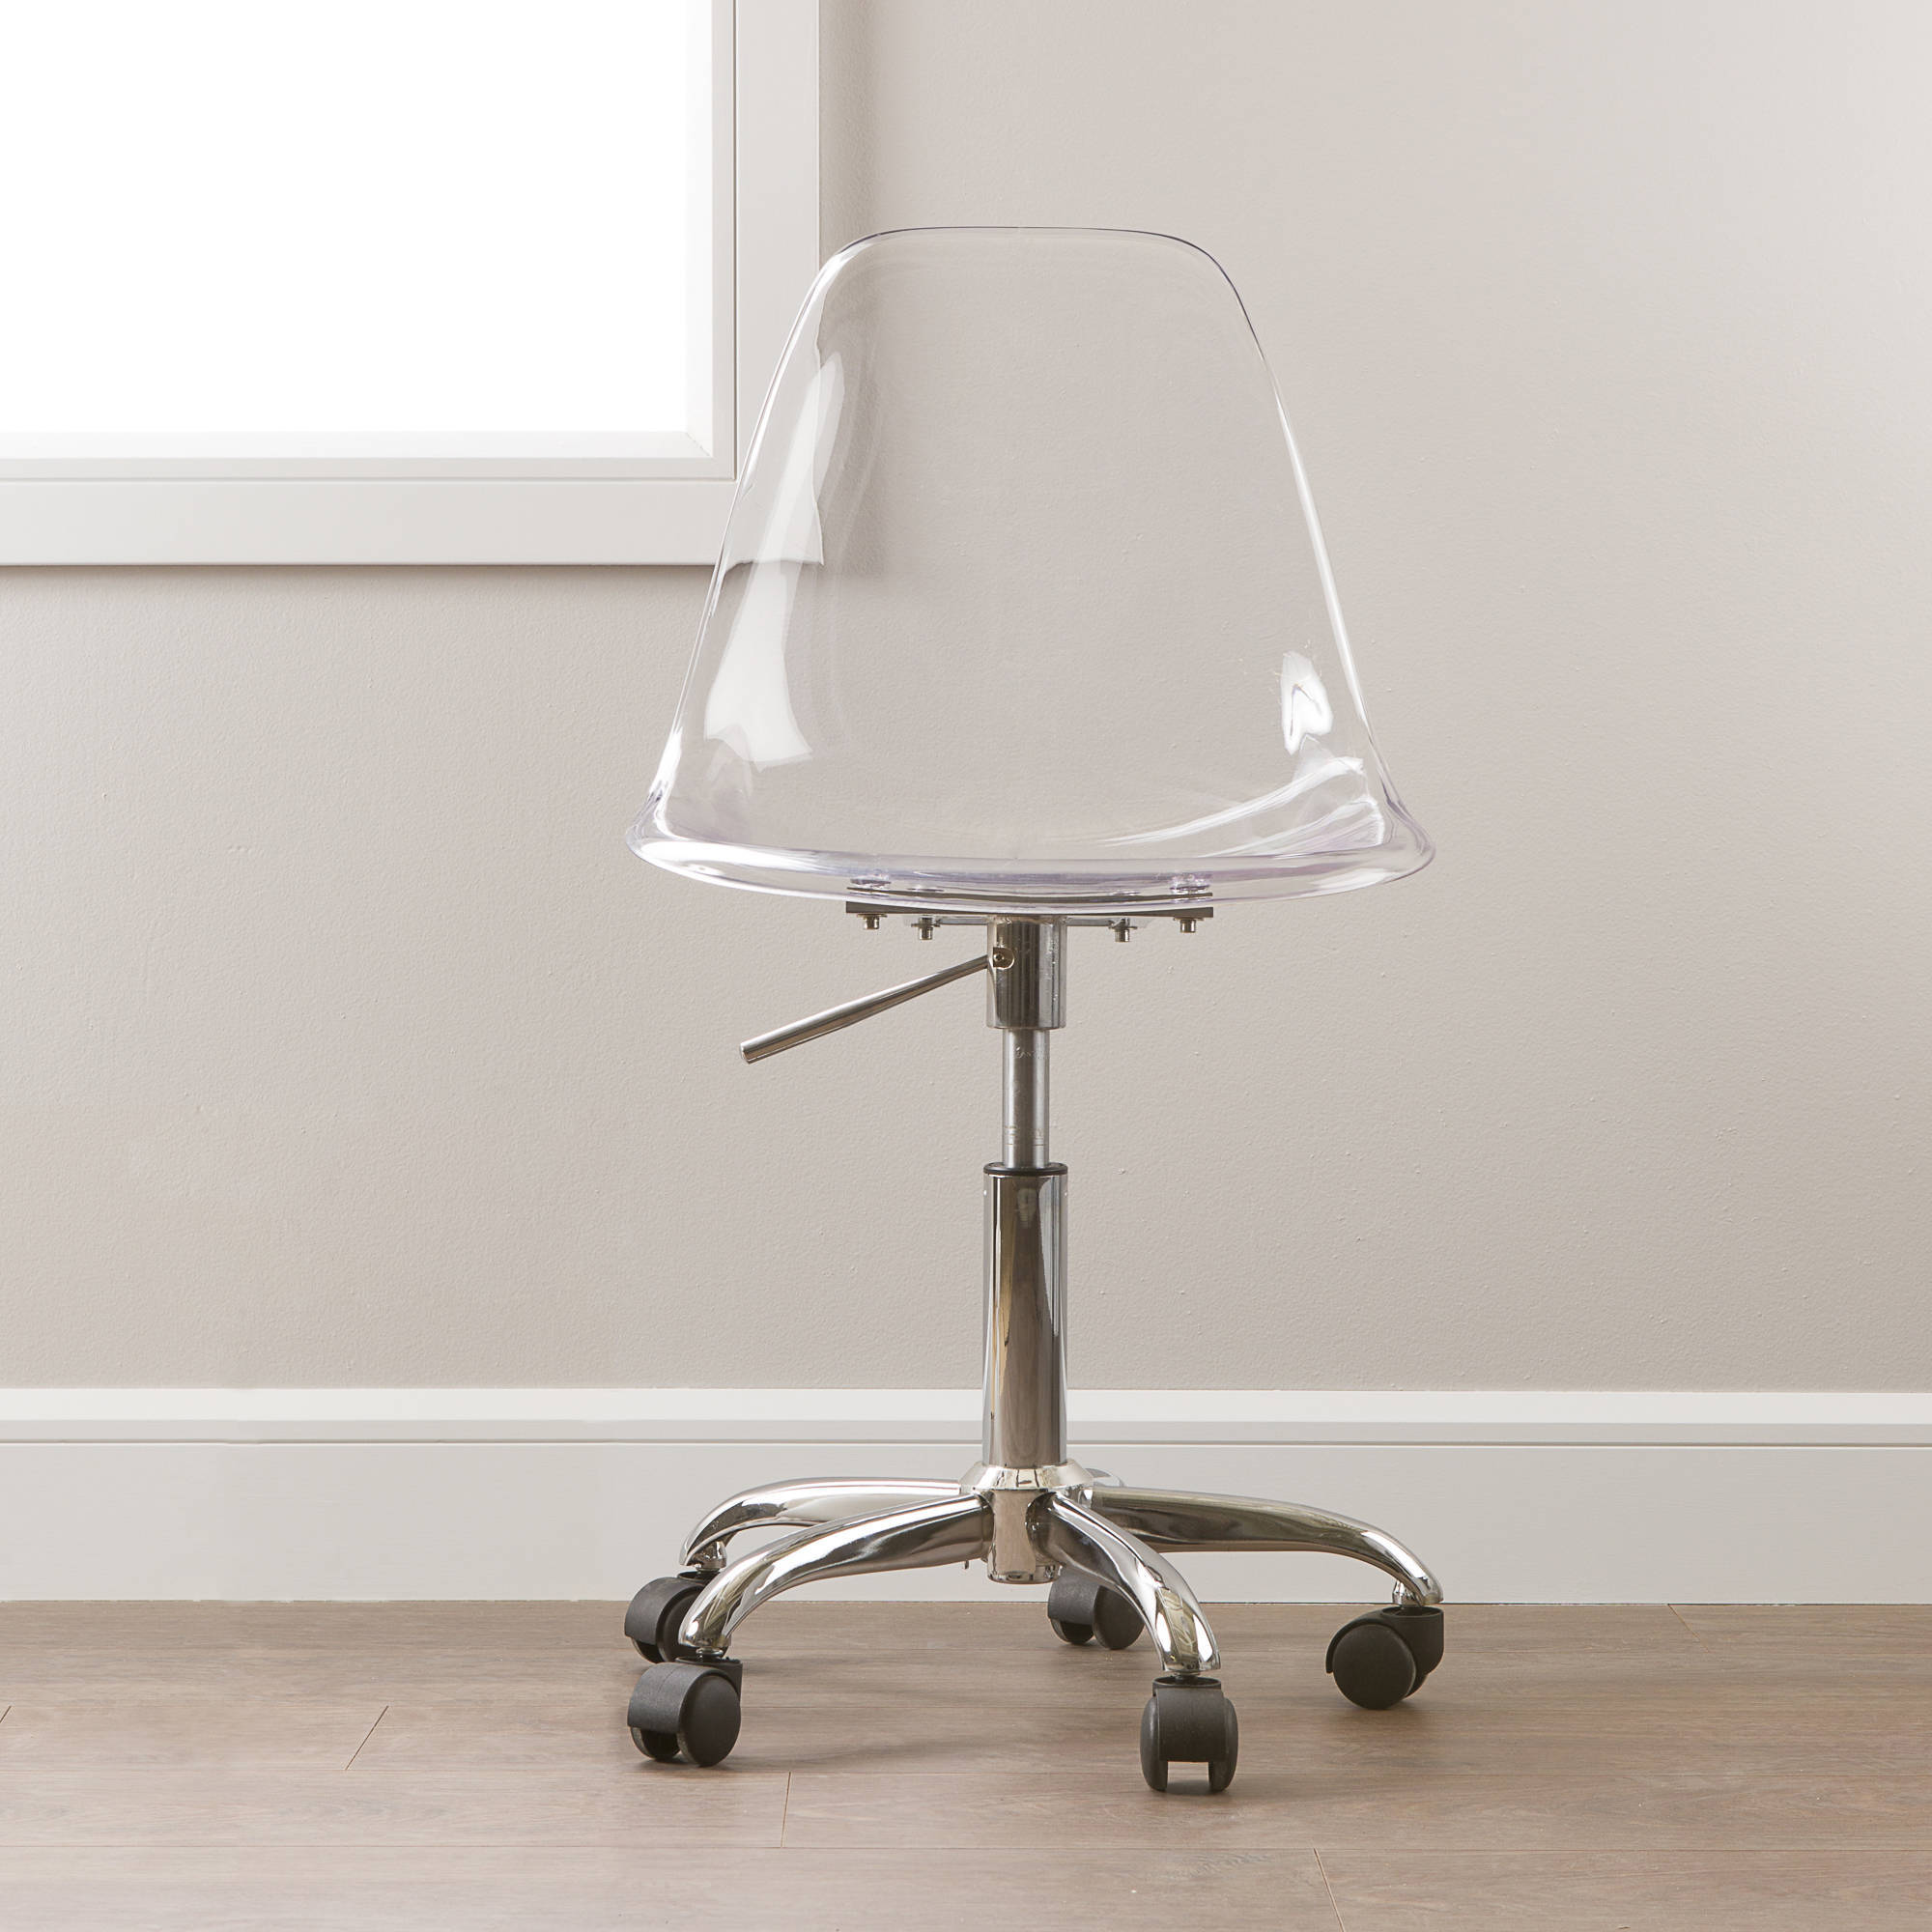 clear office chairs. South Shore Annexe Clear Office Chair With Wheels, Multiple Colors Chairs O